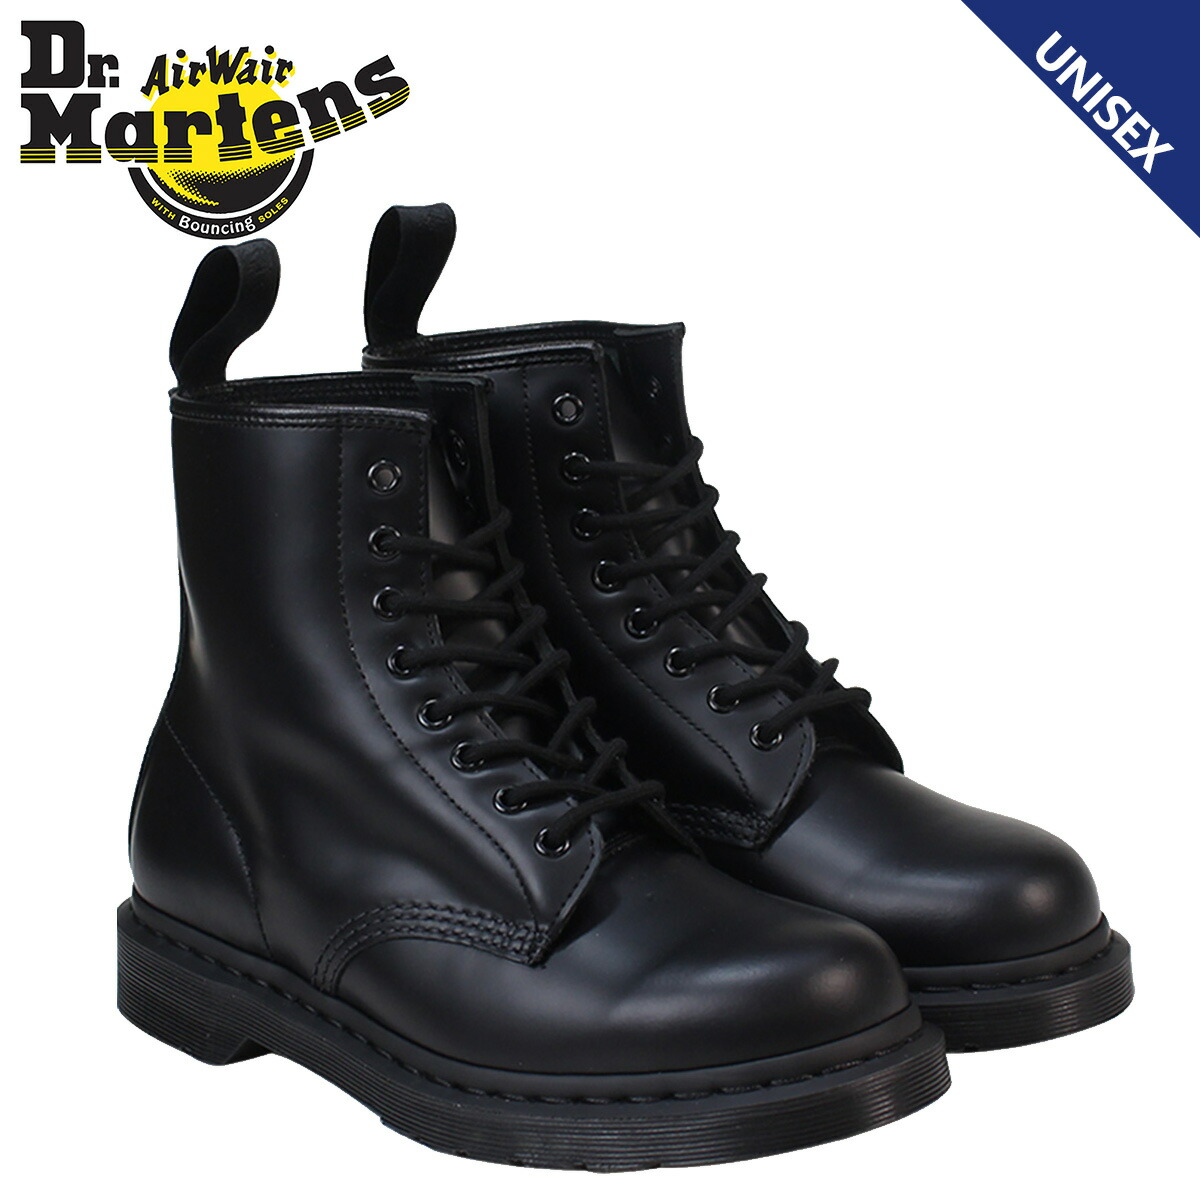 8c2541ee462 Dr.Martens 8 hall boots doctor Martin 1460 men's lady's 8EYE MONO BOOT  R14353001